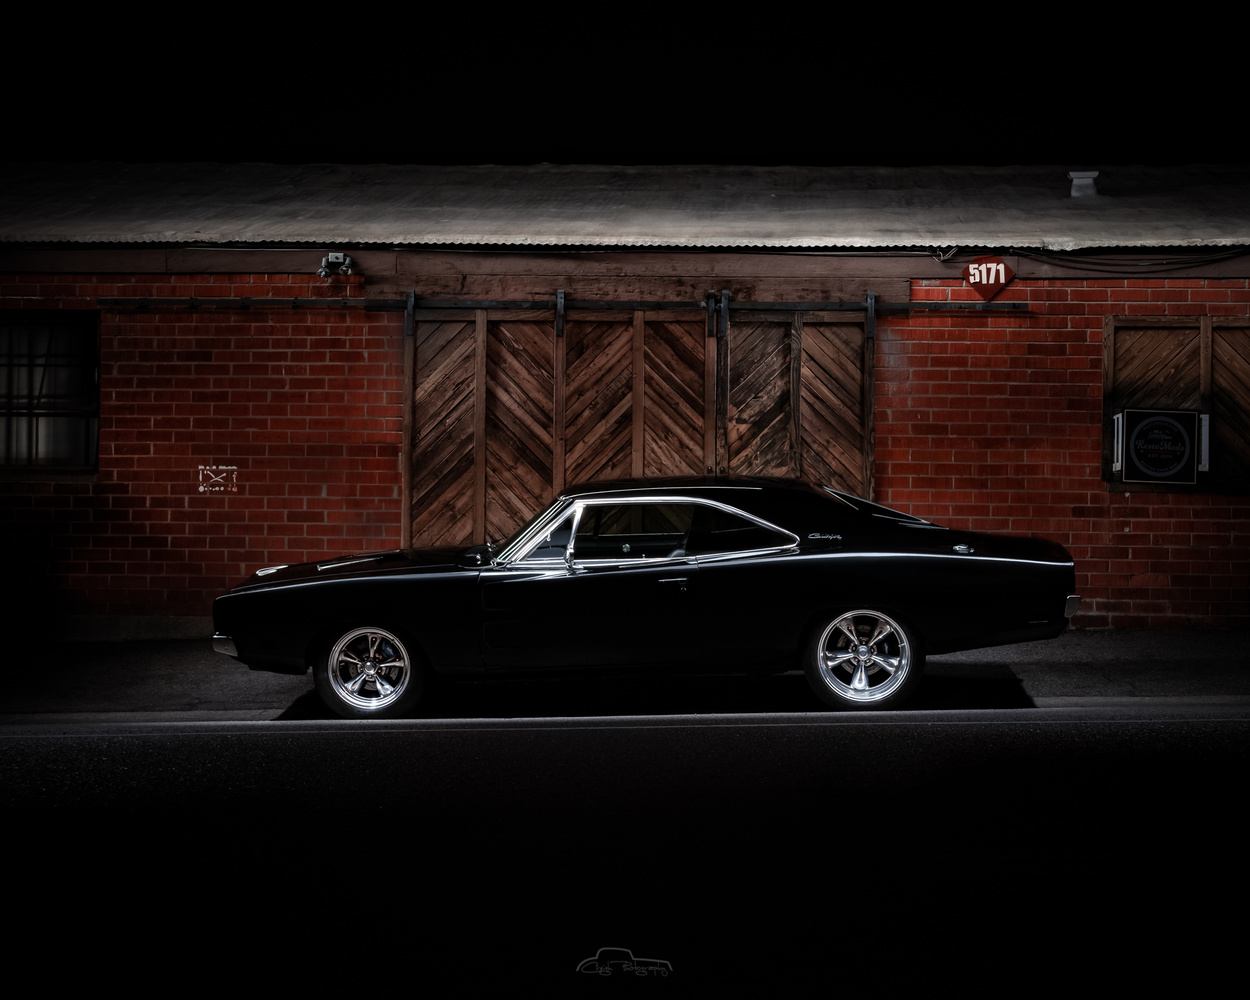 69 Charger profile Resto Mods by Creigh McIntyre